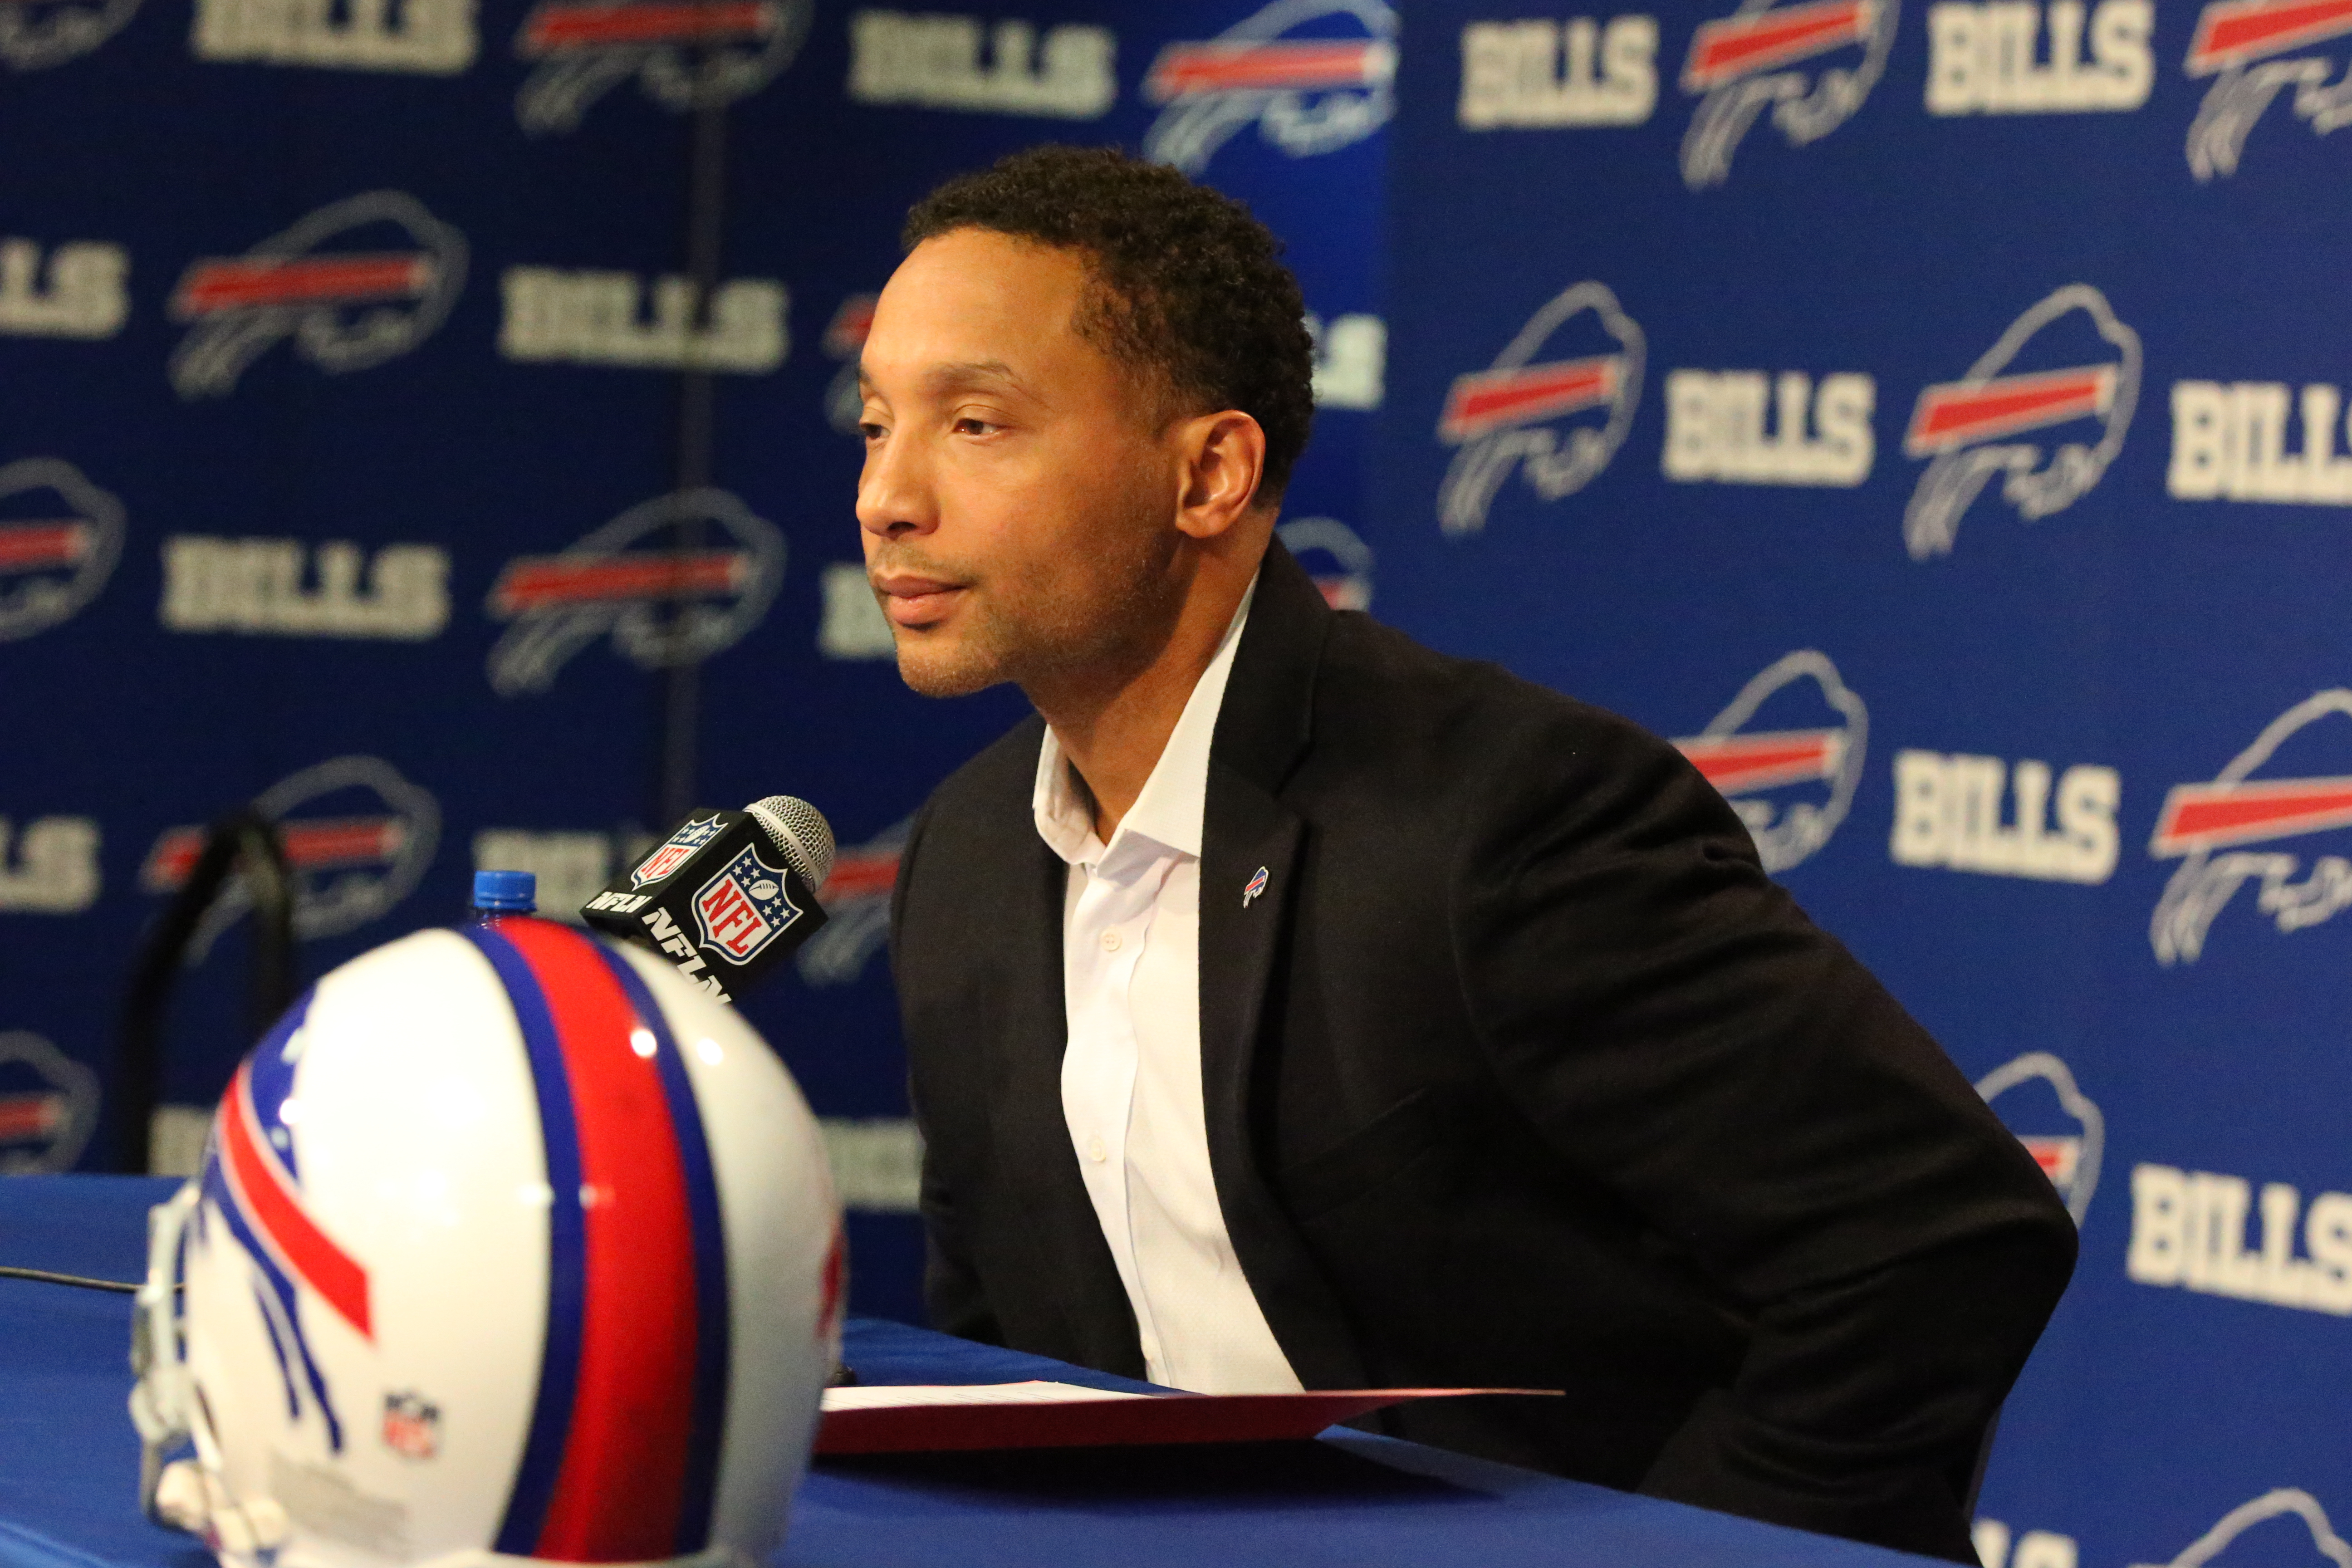 Former Bills General Manager Doug Whaley addresses reporters at his disastrous end-of-year news conference. (James P. McCoy/Buffalo News)